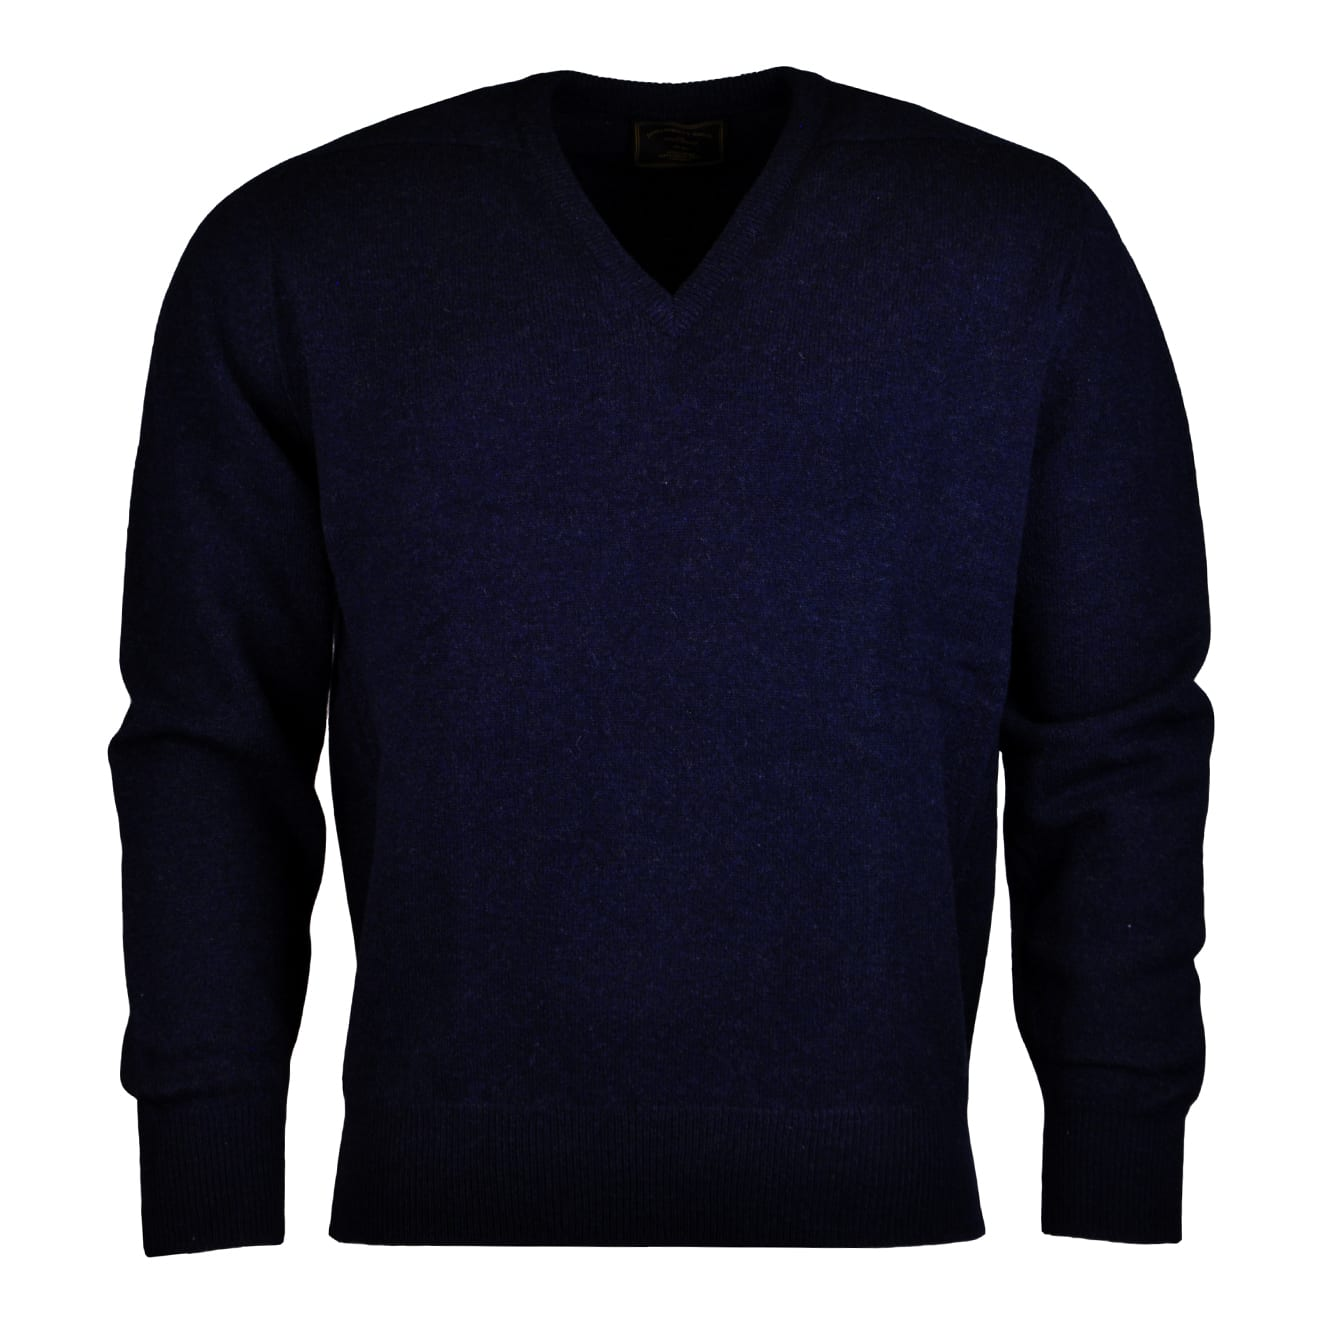 ames Purdey lambswool sweater navy